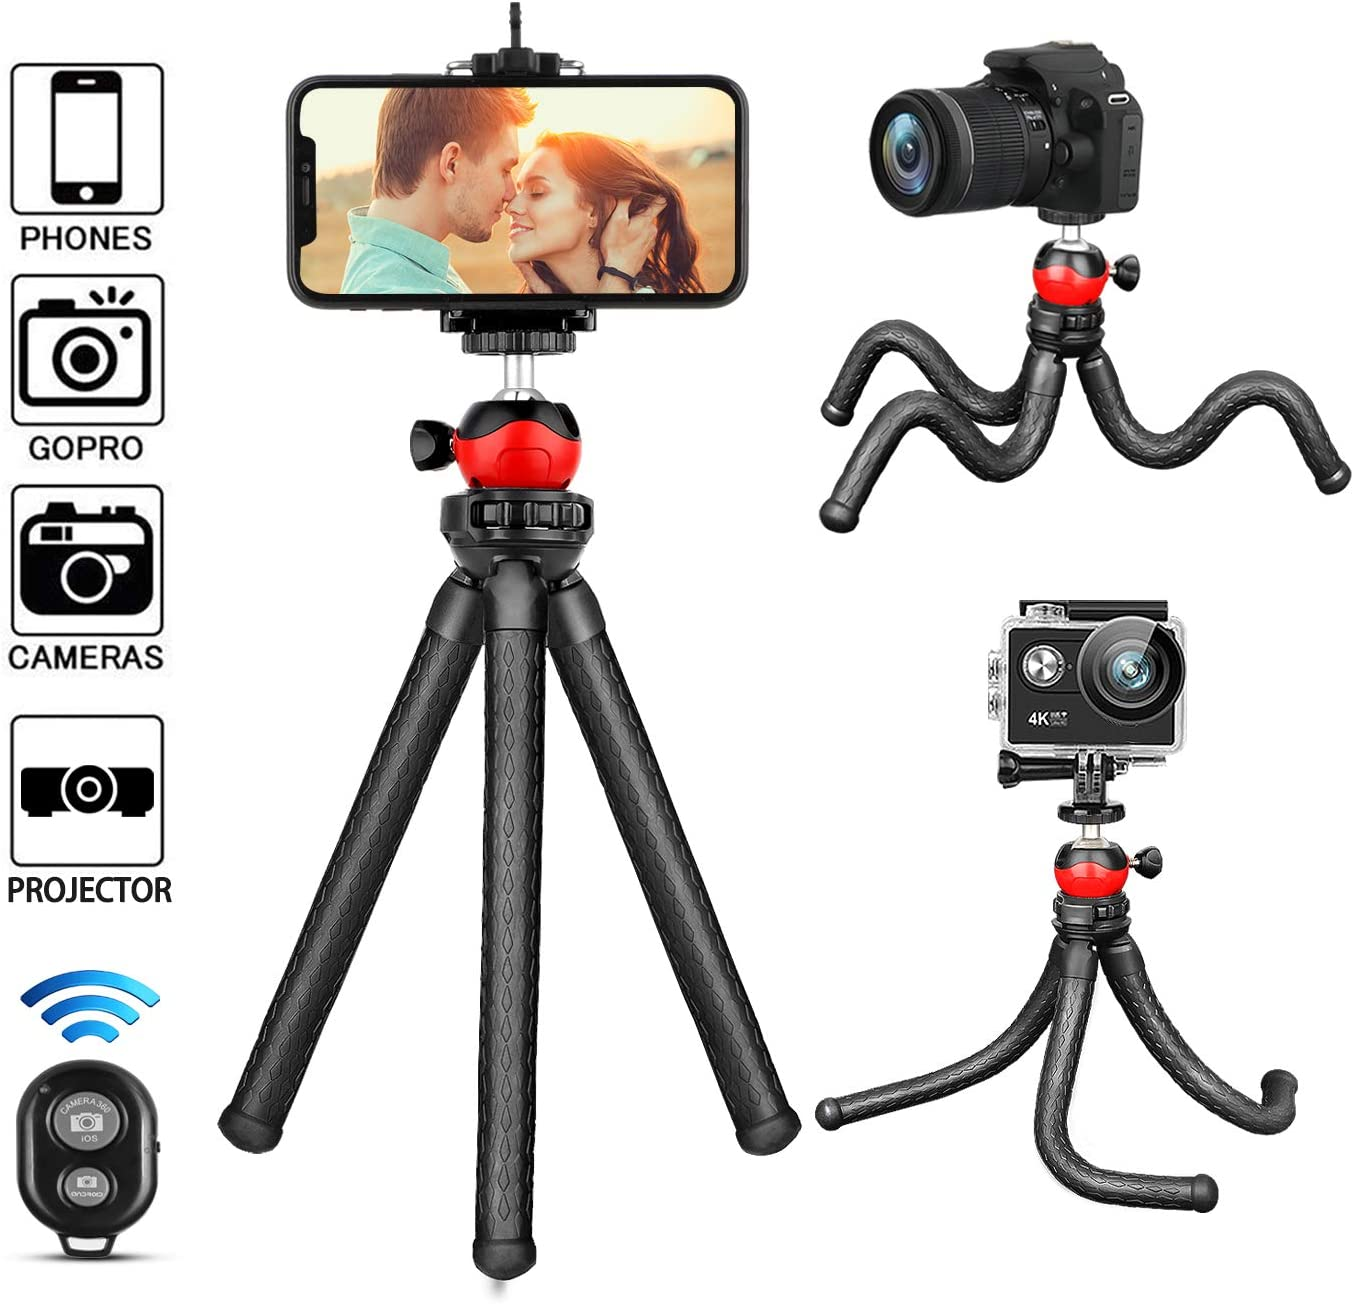 Phone Tripod,Portable and Flexible Tripod with Wireless Remote and Universal Clip, Compatible with iPhone/Android/Camera GoPro,iPhone Tripod for Live Streaming Tiktok YouTube Video Recording